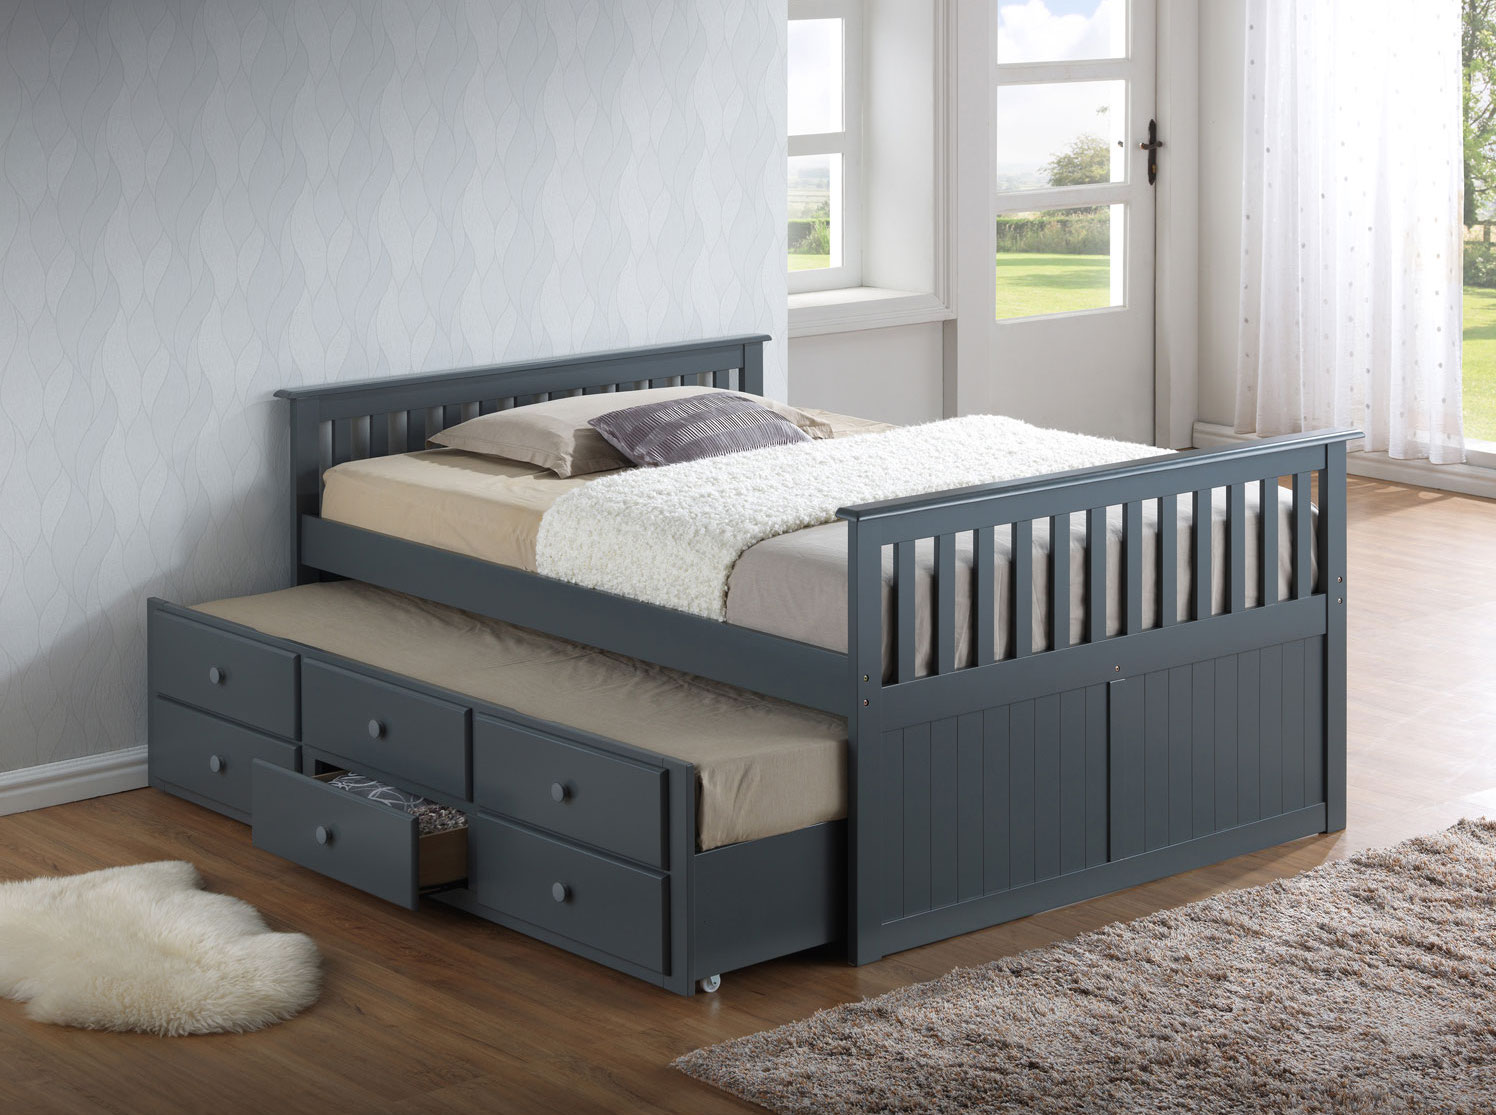 toddler beds - broyhill kids captains bed